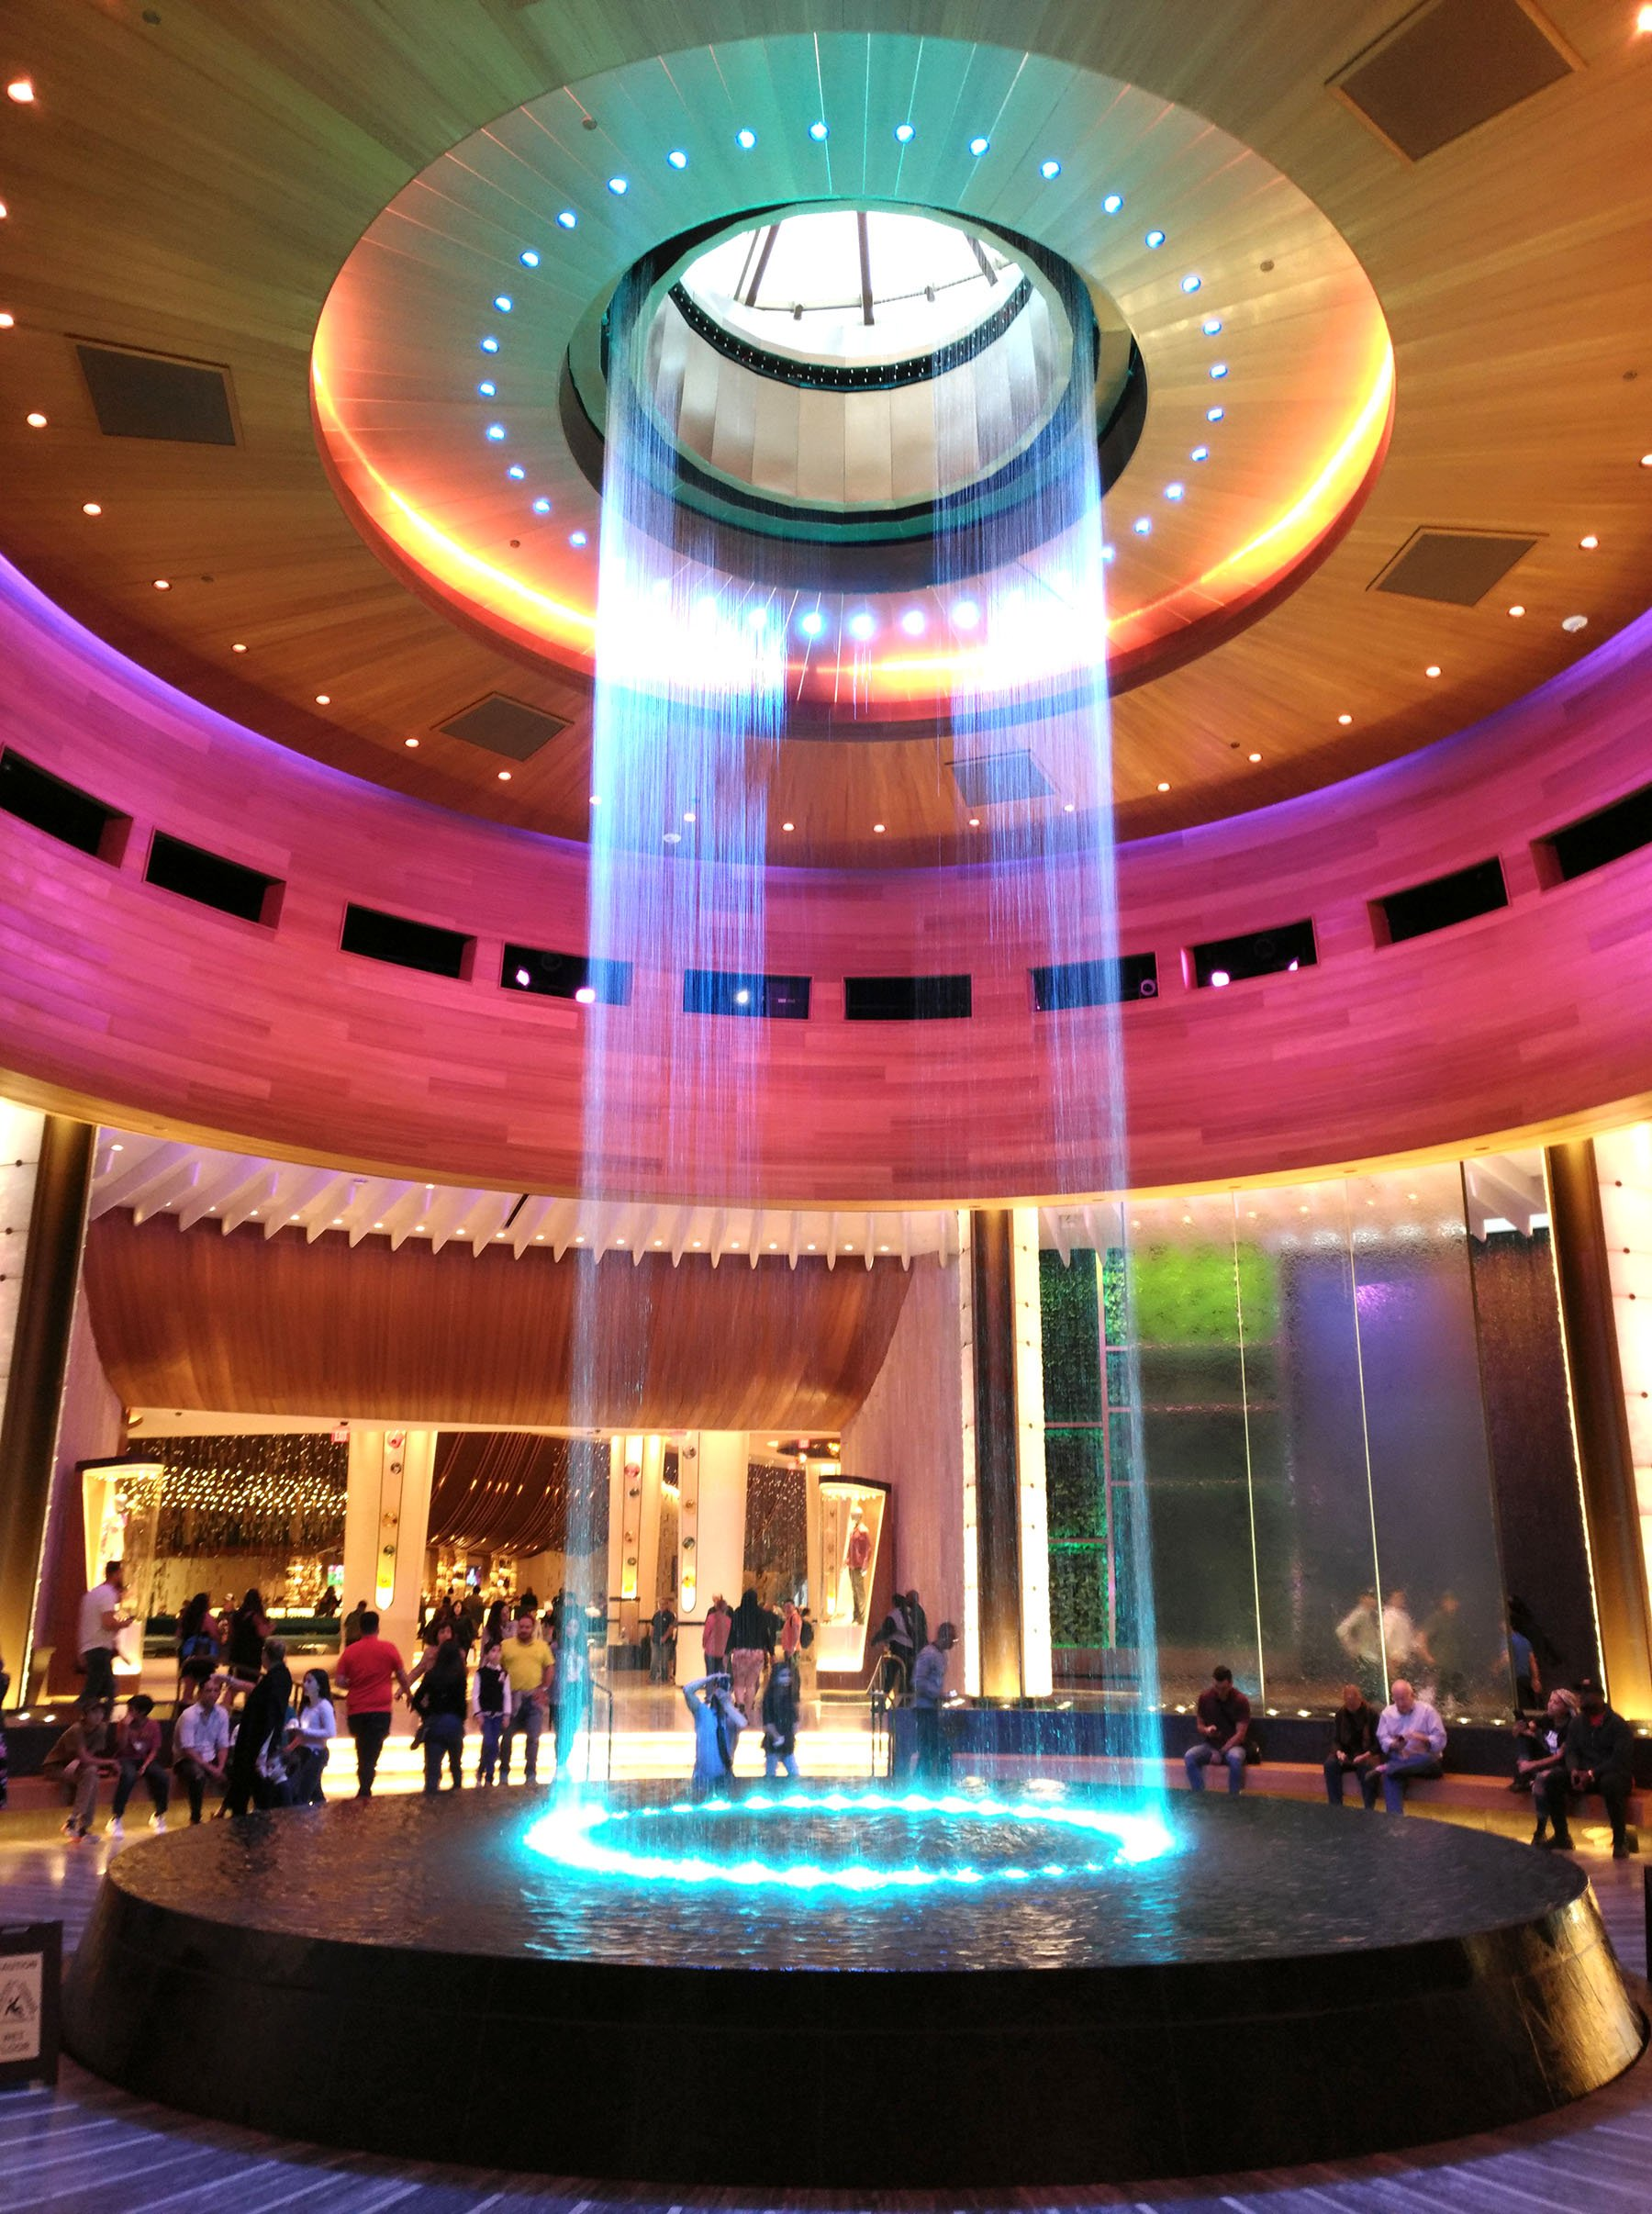 The Oculus is a central feature at the Guitar Hotel at Seminole Hard Rock in Hollywood, Fla. (Craig Davis/craigslegztravels.com)